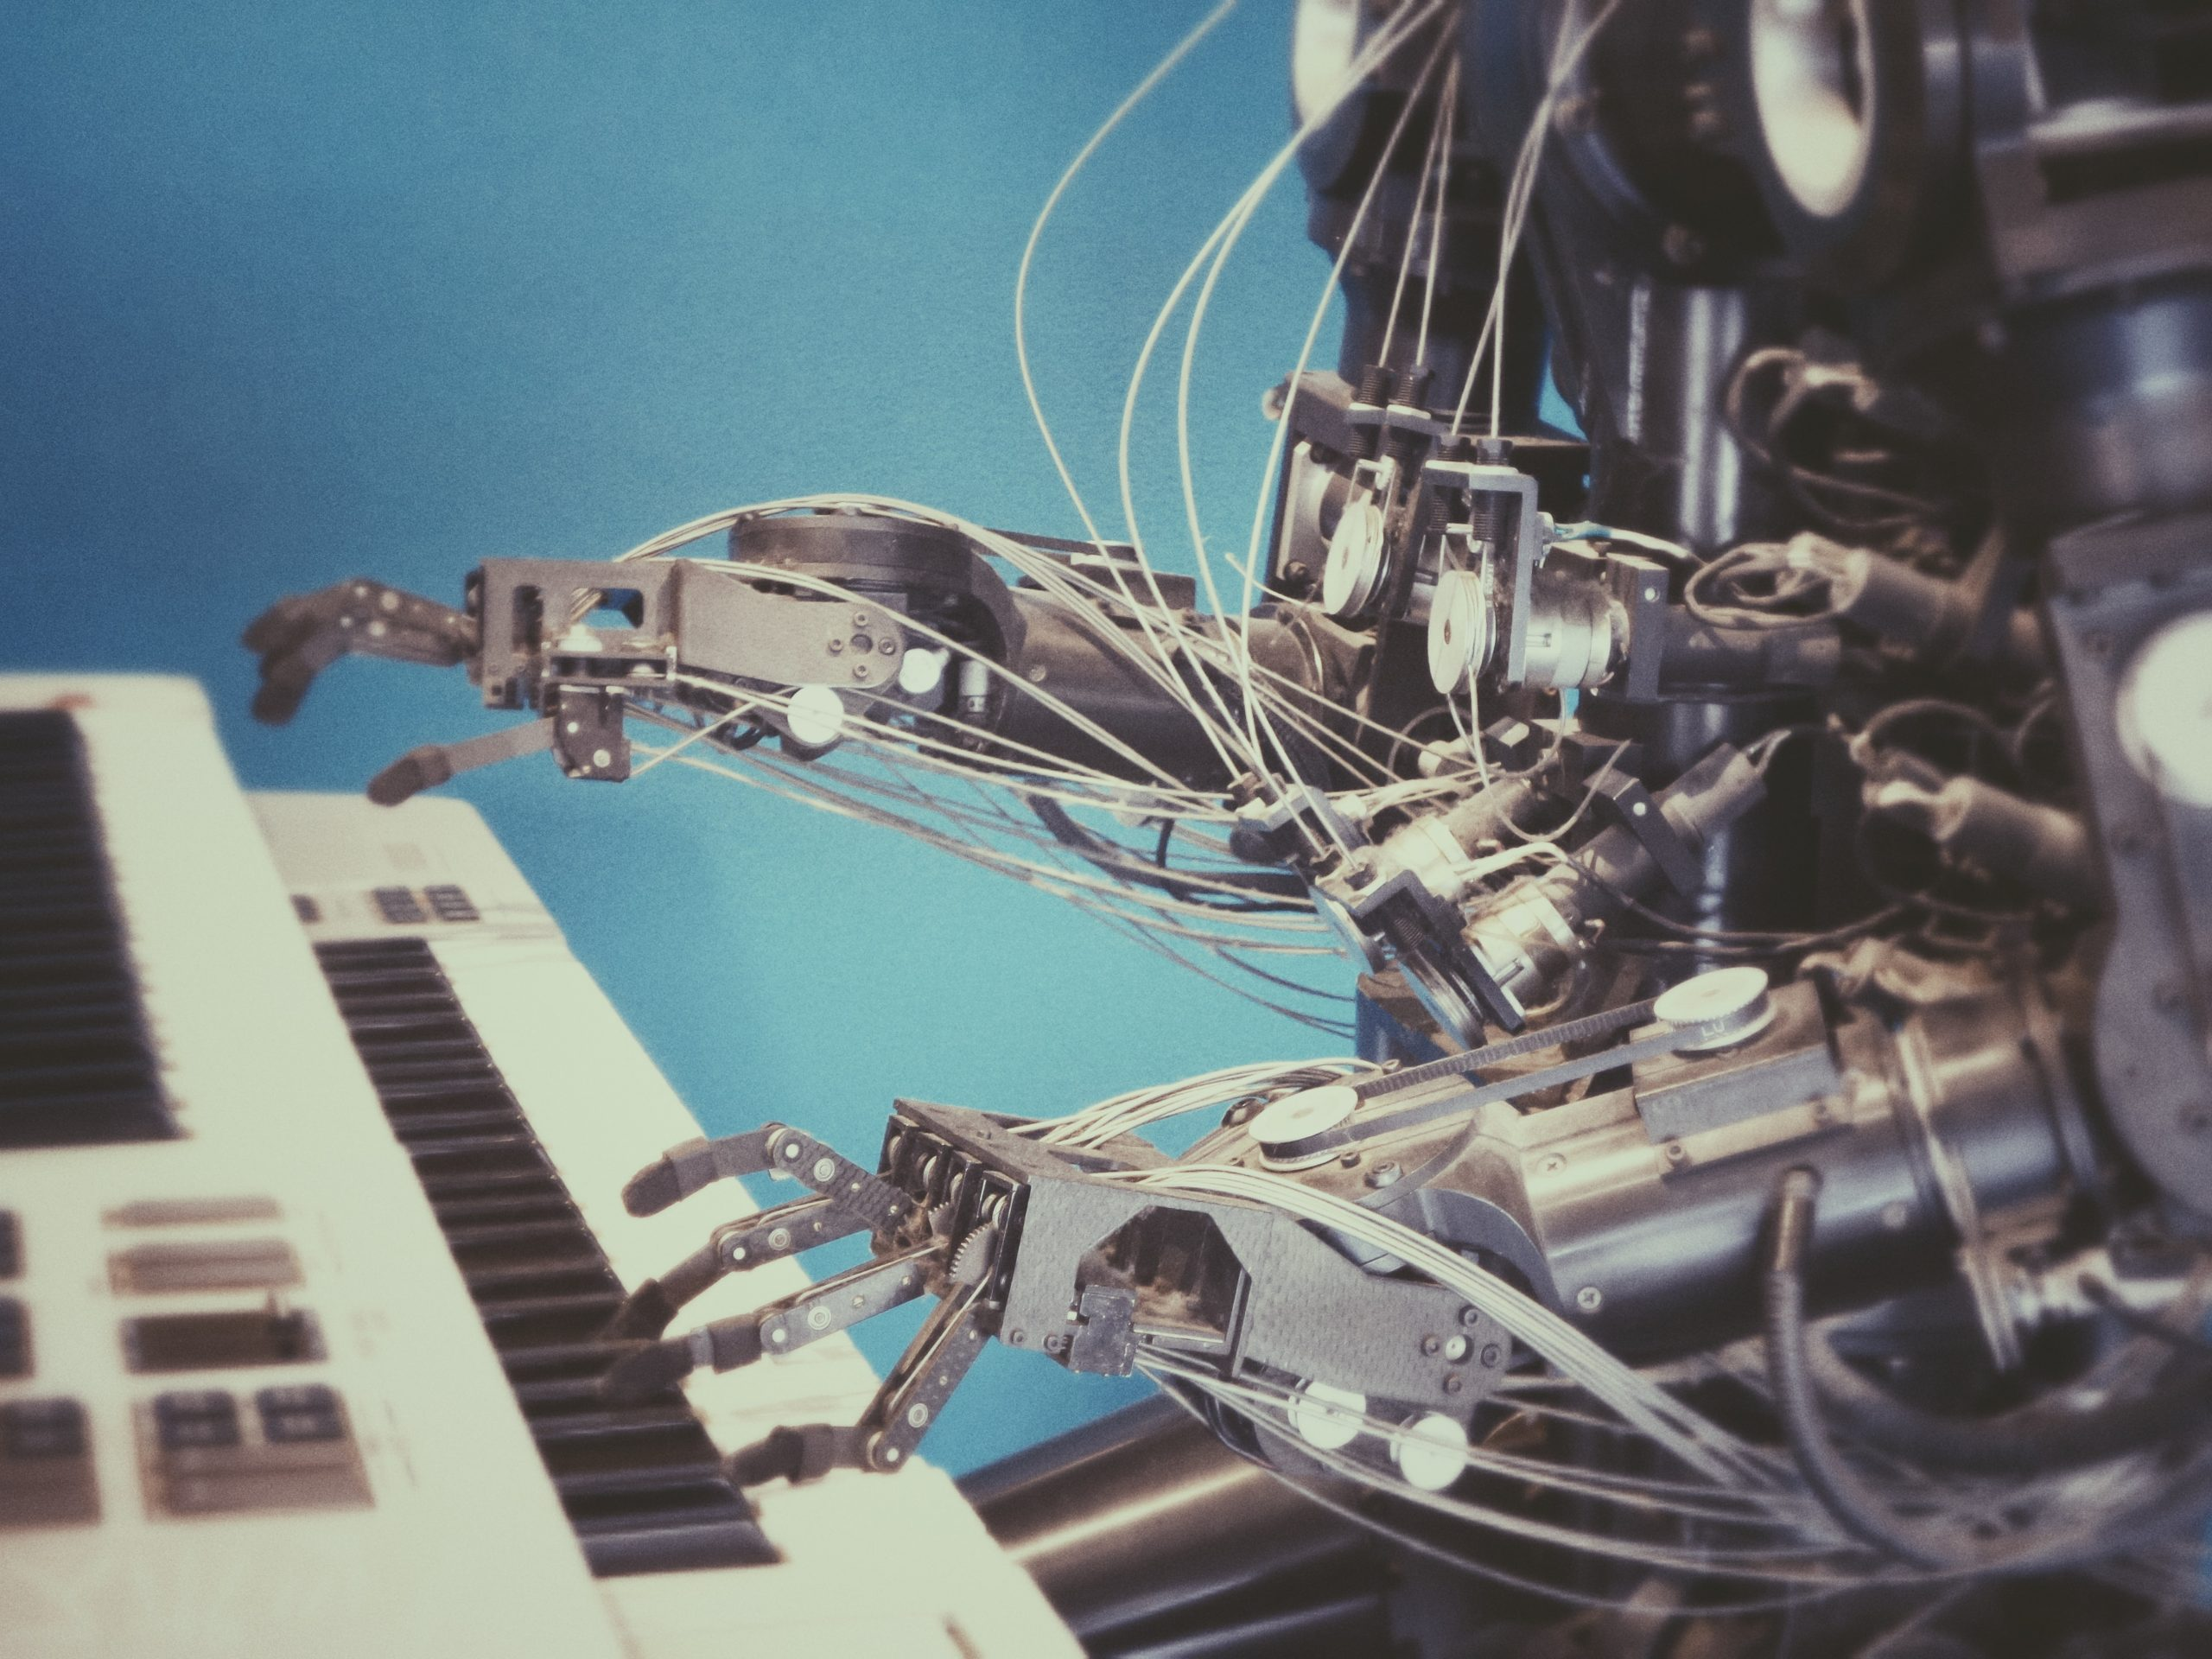 Automation by robot at the piano